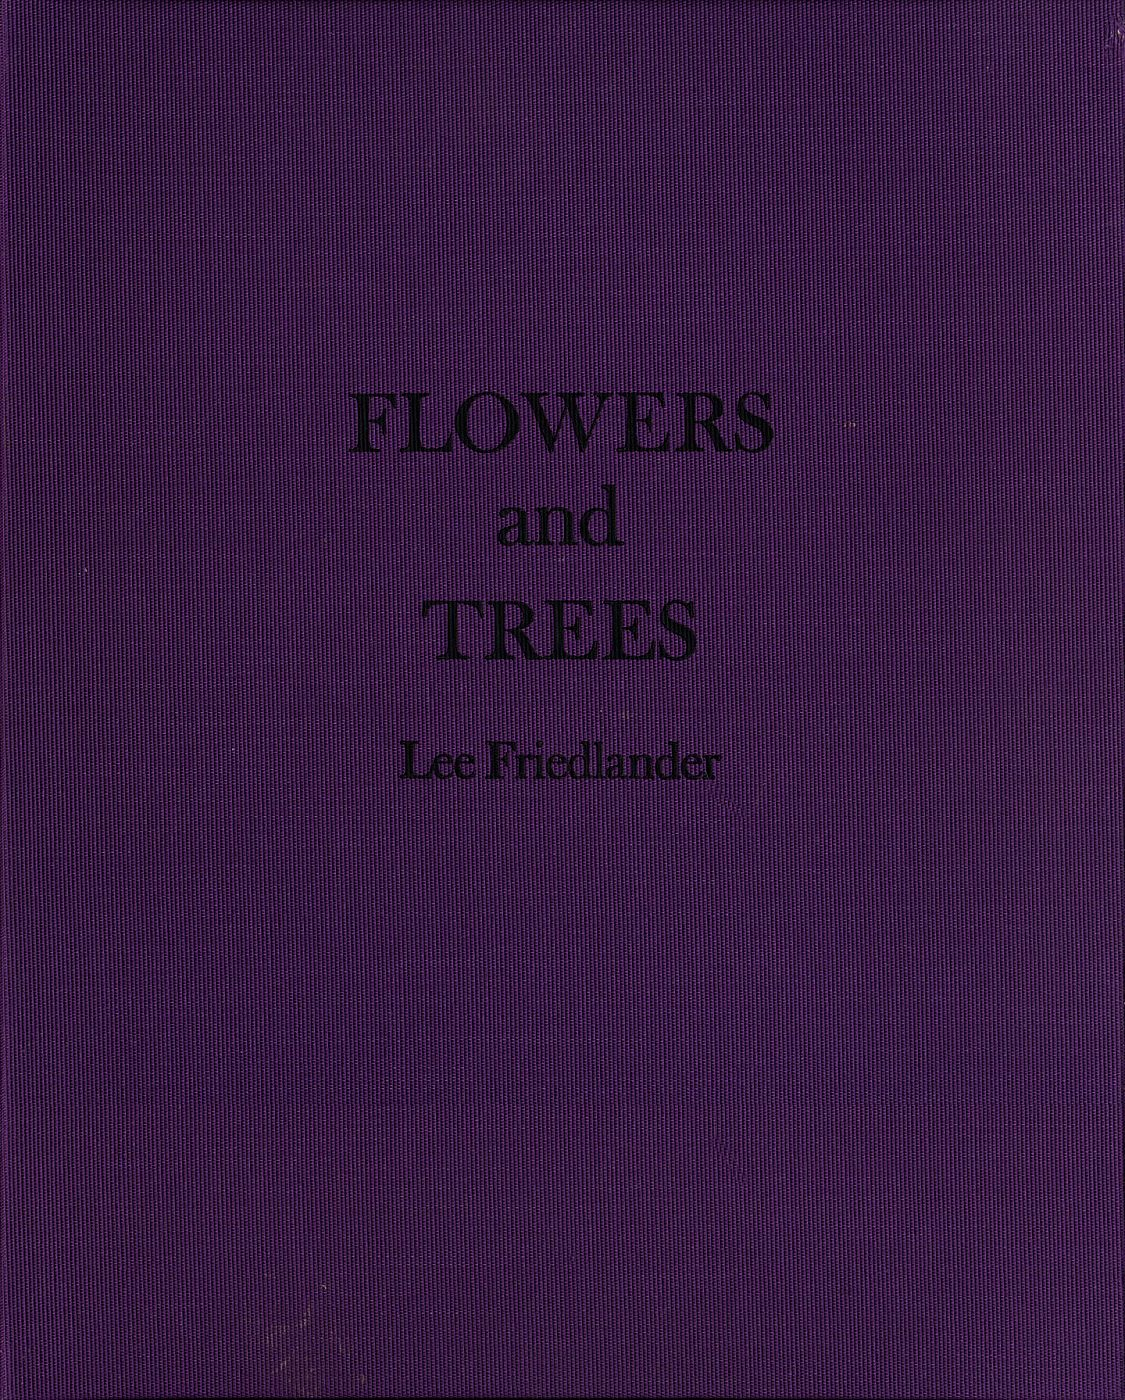 Lee Friedlander: Flowers and Trees [SIGNED]